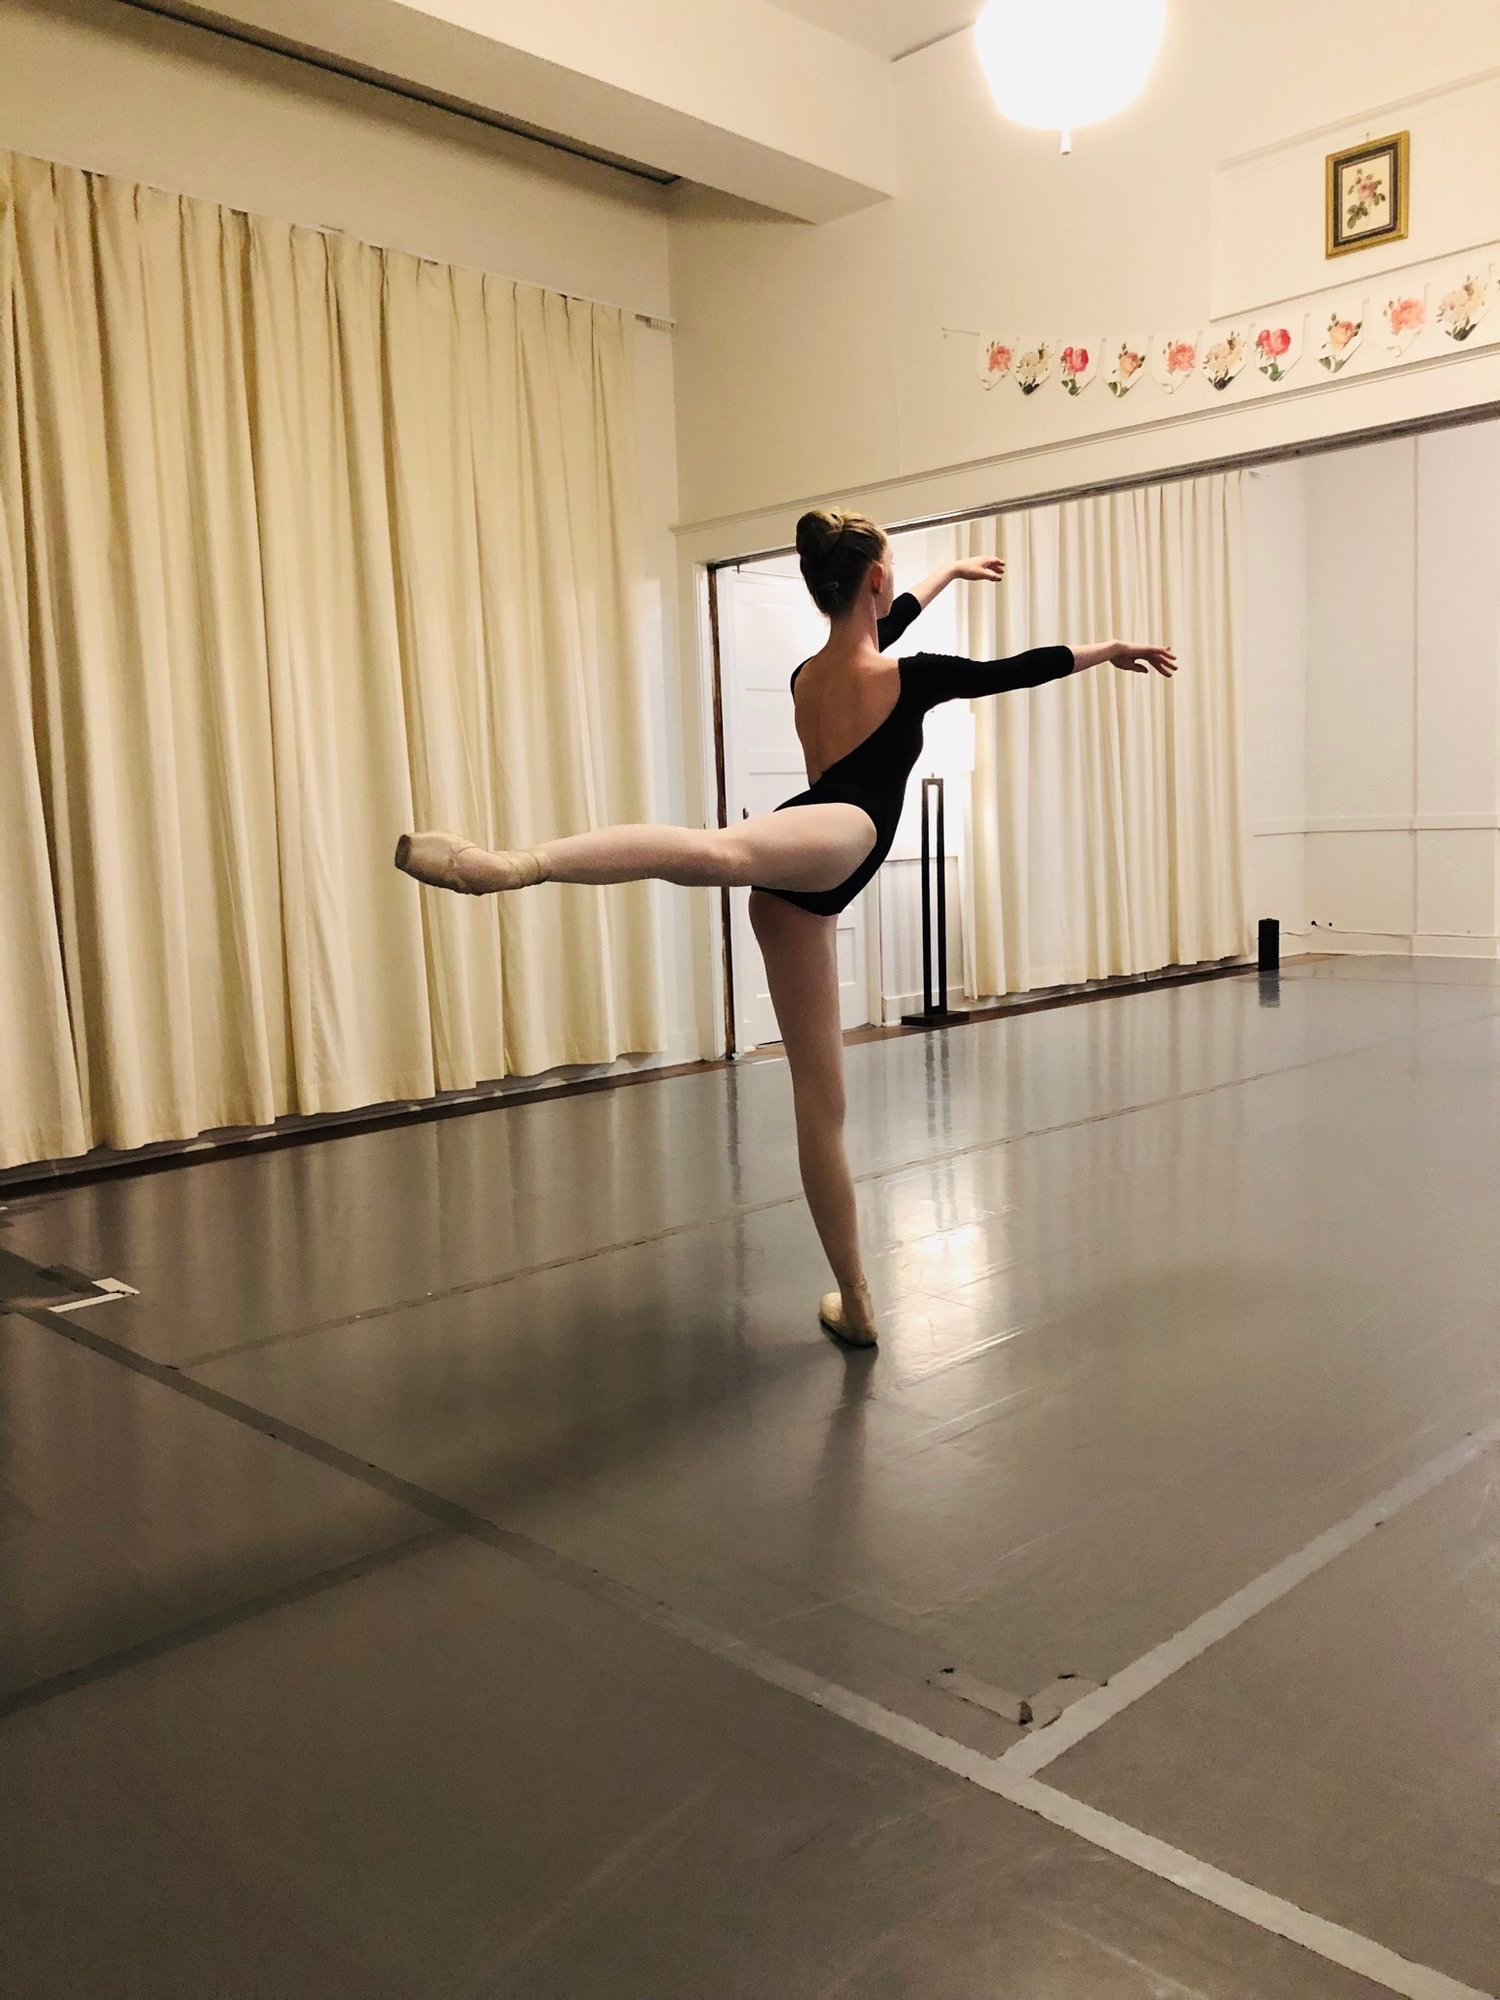 Level 3 - INTERMEDIATE (ages 12-14)Find your ballet voice. This series of classes is designed for the dancer seeking excellent dance career training as well as the passionate dancer who enjoys high-quality ballet as recreation. Registration for Level 3 is only available to dancers who have completed Level 2 classes at RCBS.Once 3b is completed, dancers graduate from RCBS & attend pre-professional or recreational classes all over. RCBS Alumni have been accepted into programs & companies like Oregon Ballet Theatre School, Jefferson Dancers, Bodyvox's Junior Artist Generator as well as many summer intensives including Dance Theatre of Harlem's program in NYC.